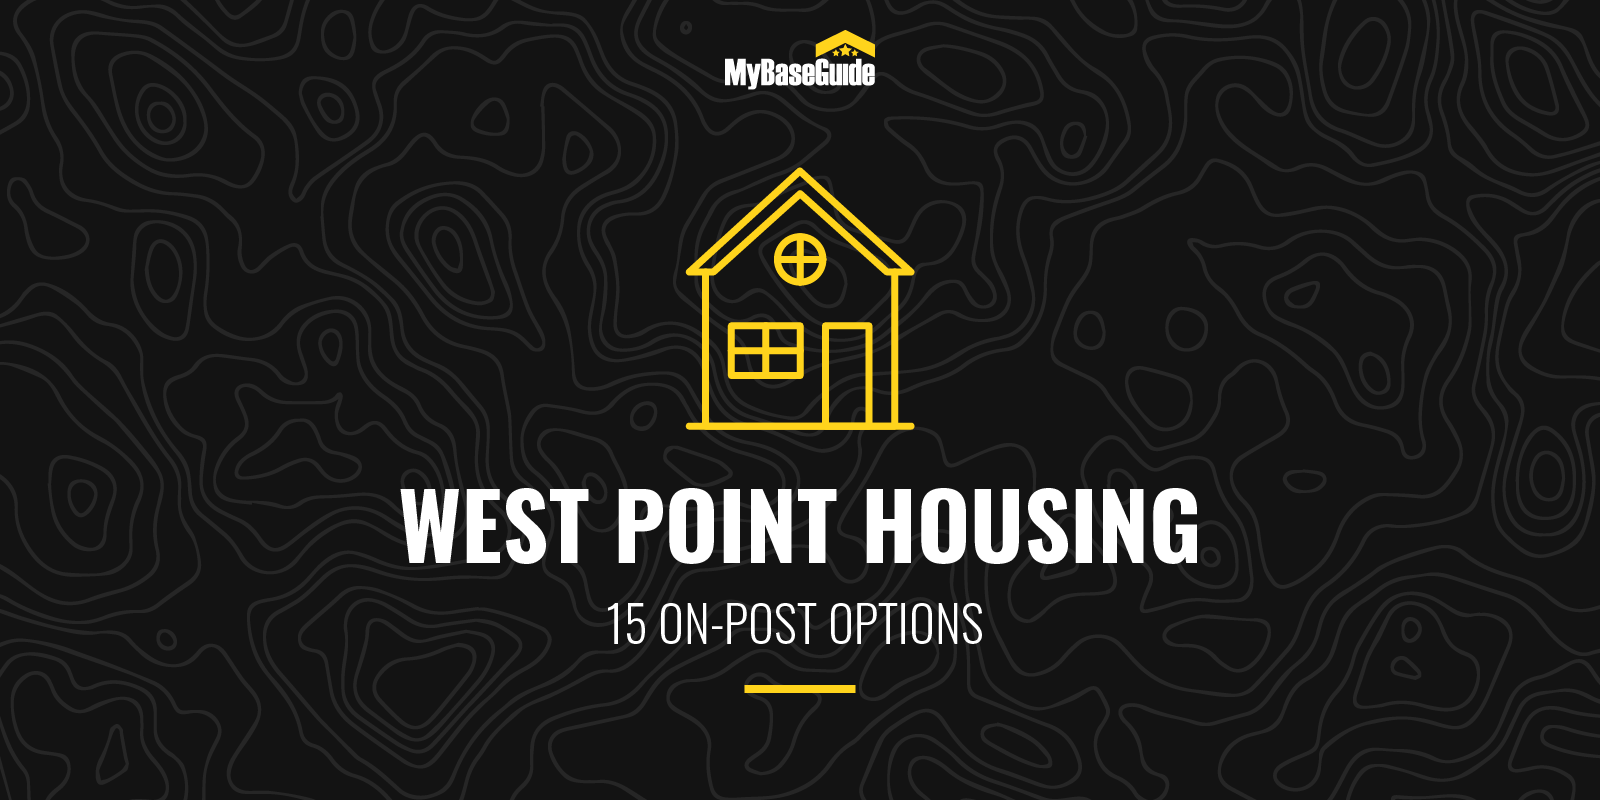 West Point Housing: 15 On-Post Options